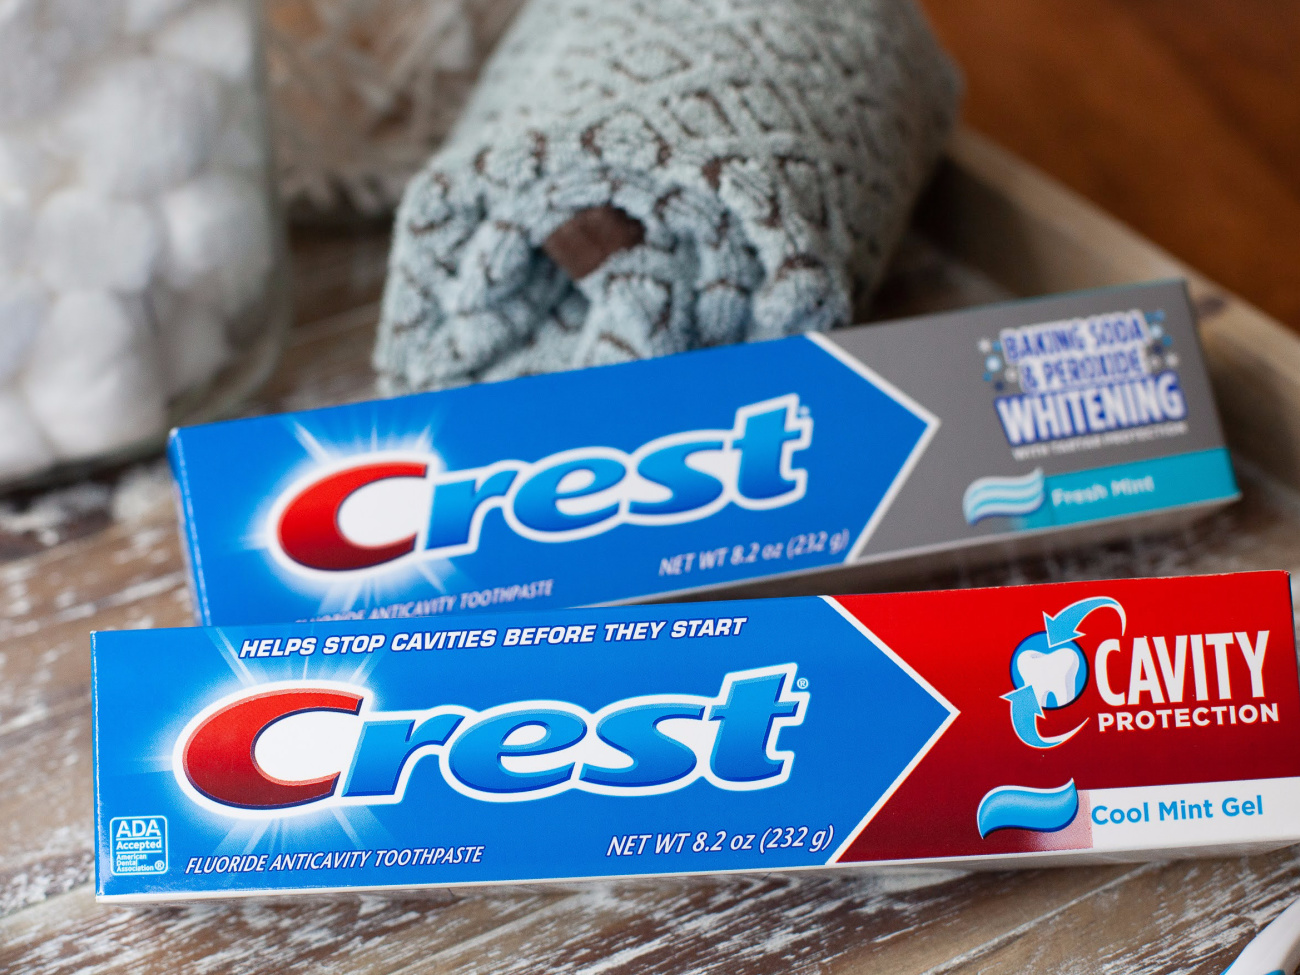 Don't Miss This BOGO Sale On Crest Toothpaste - Grab A Great Deal At Publix on I Heart Publix